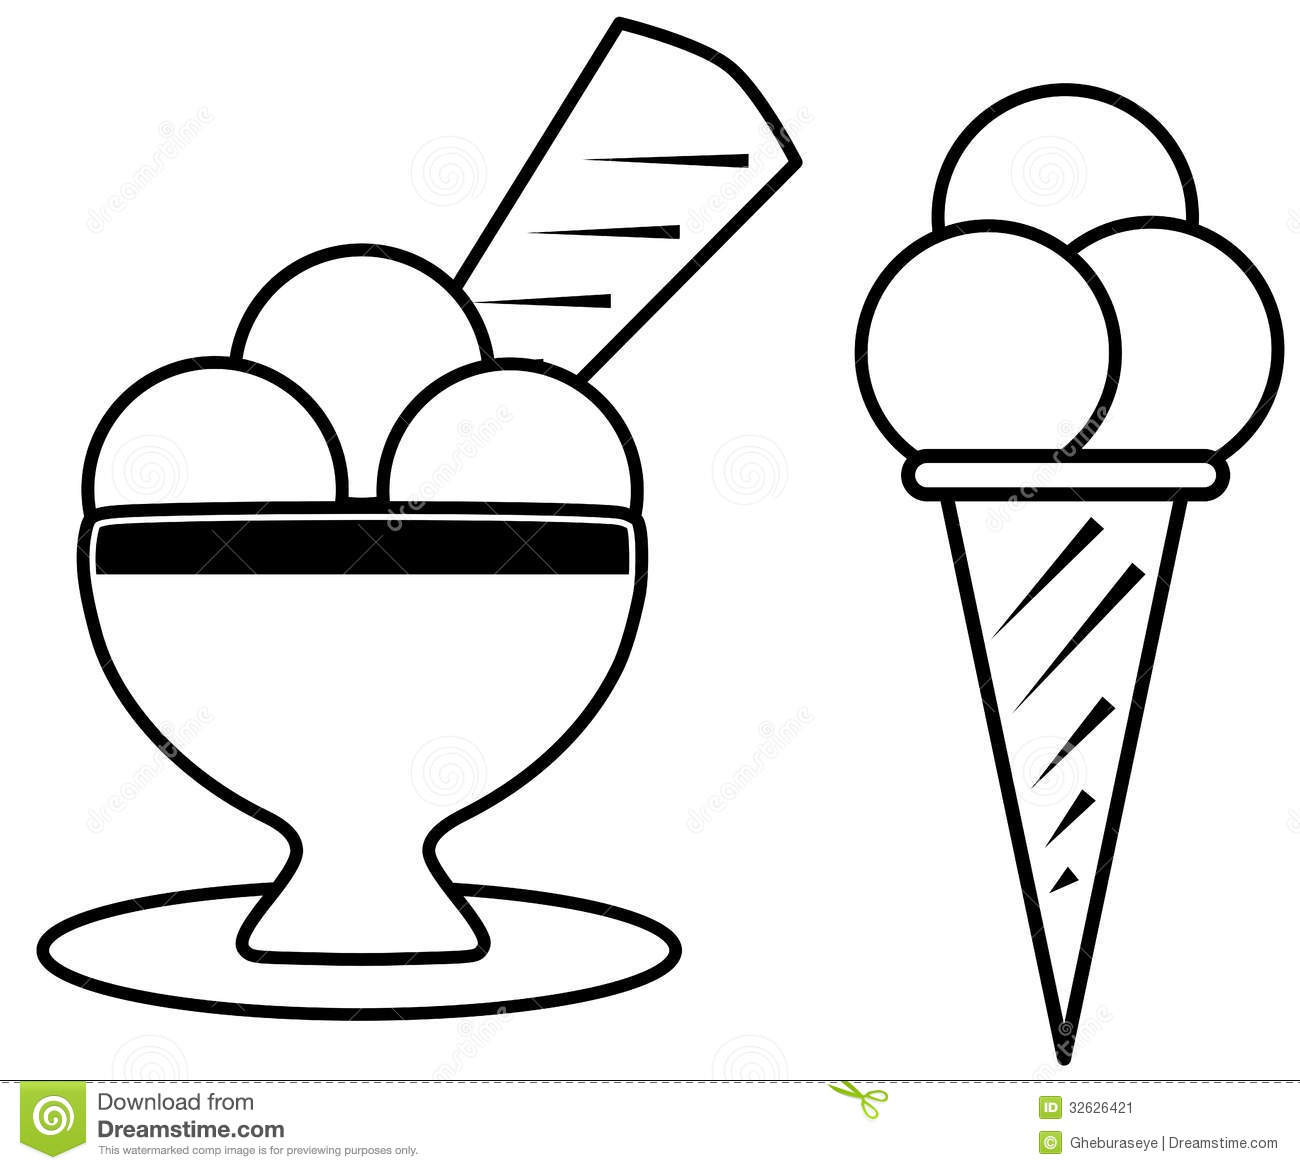 coloring ice cream stock vector illustration of color free clip art ice cream sundae bar free clipart ice cream sundae photos